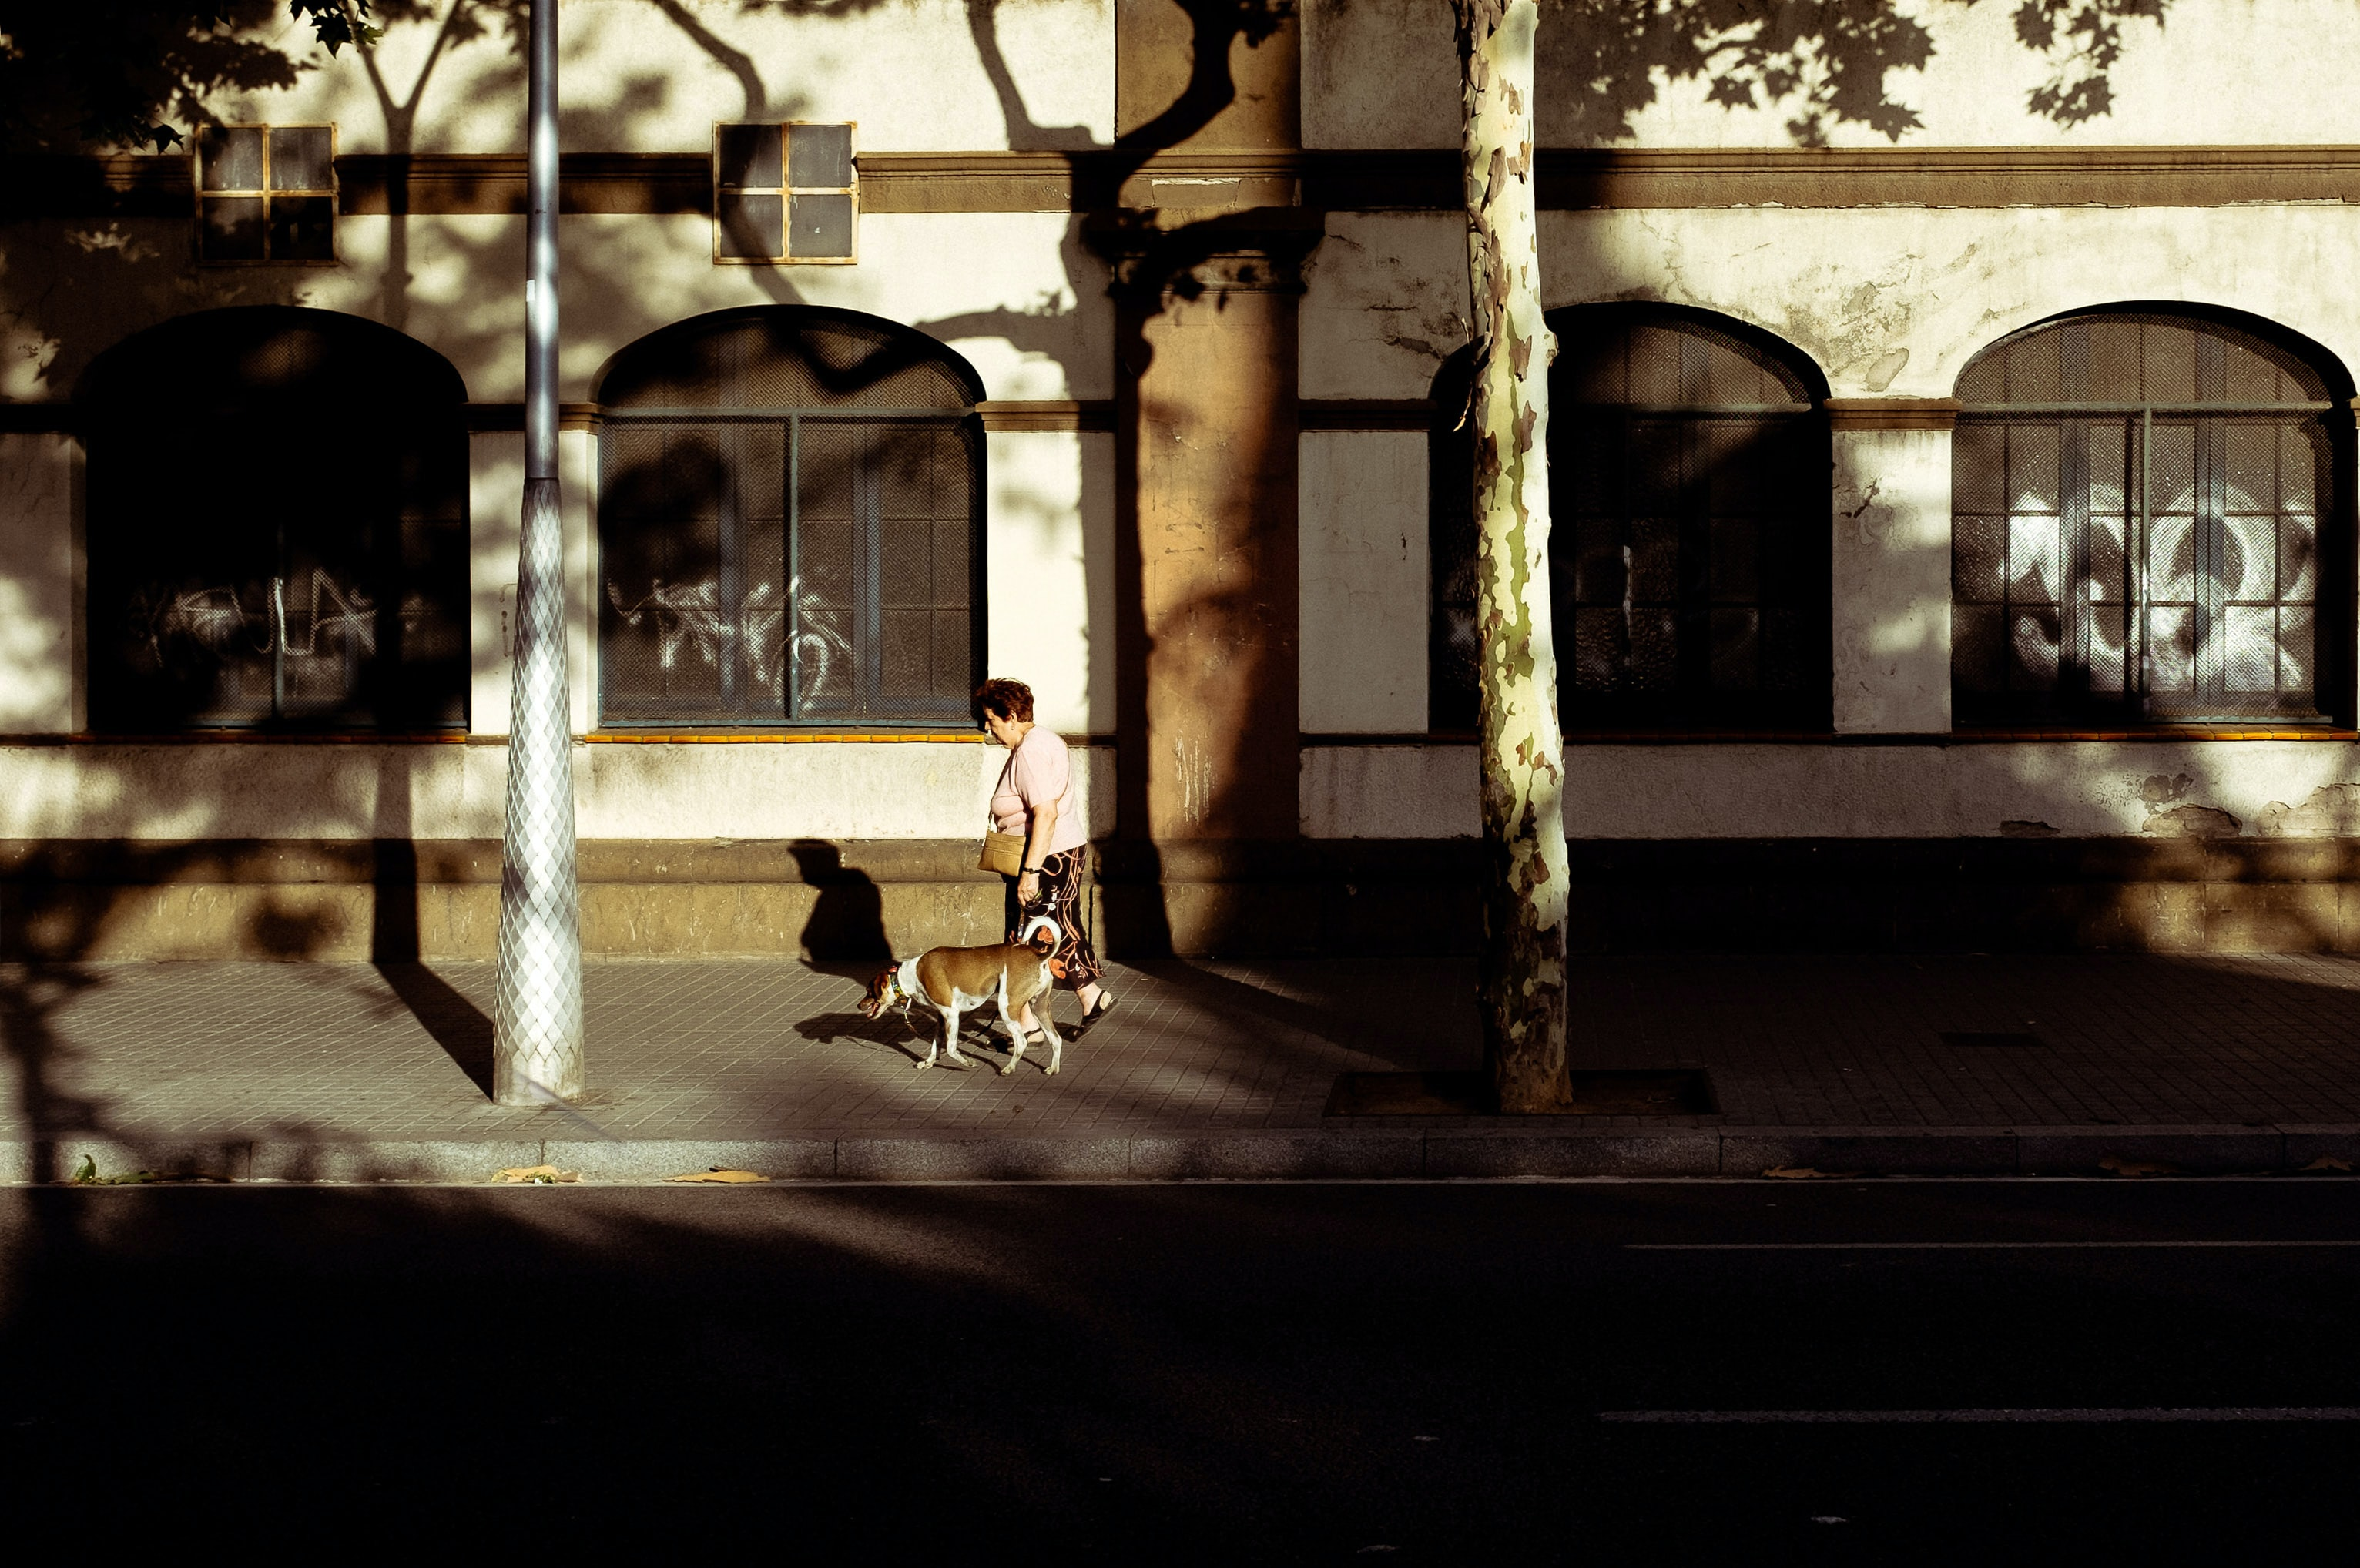 boy walking in the street with dog